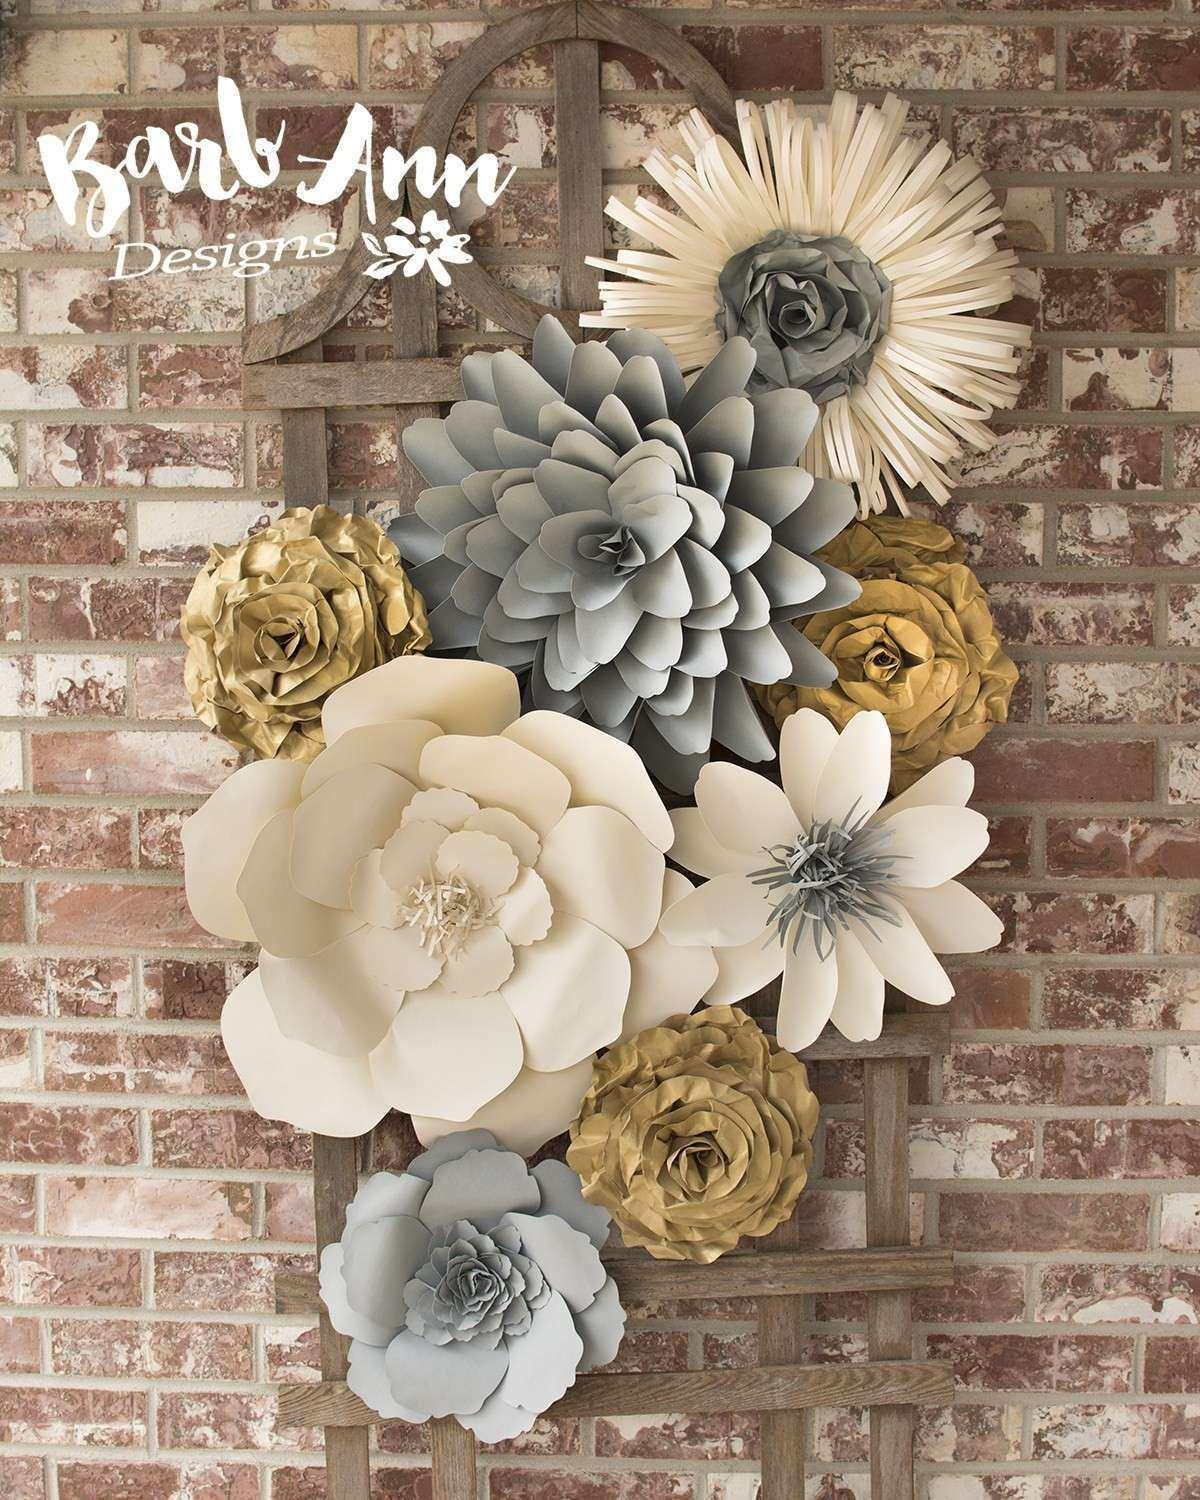 Large Paper Flowers Wall Decor Elegant Paper Flower Wall Backdrop Barb Ann Designs